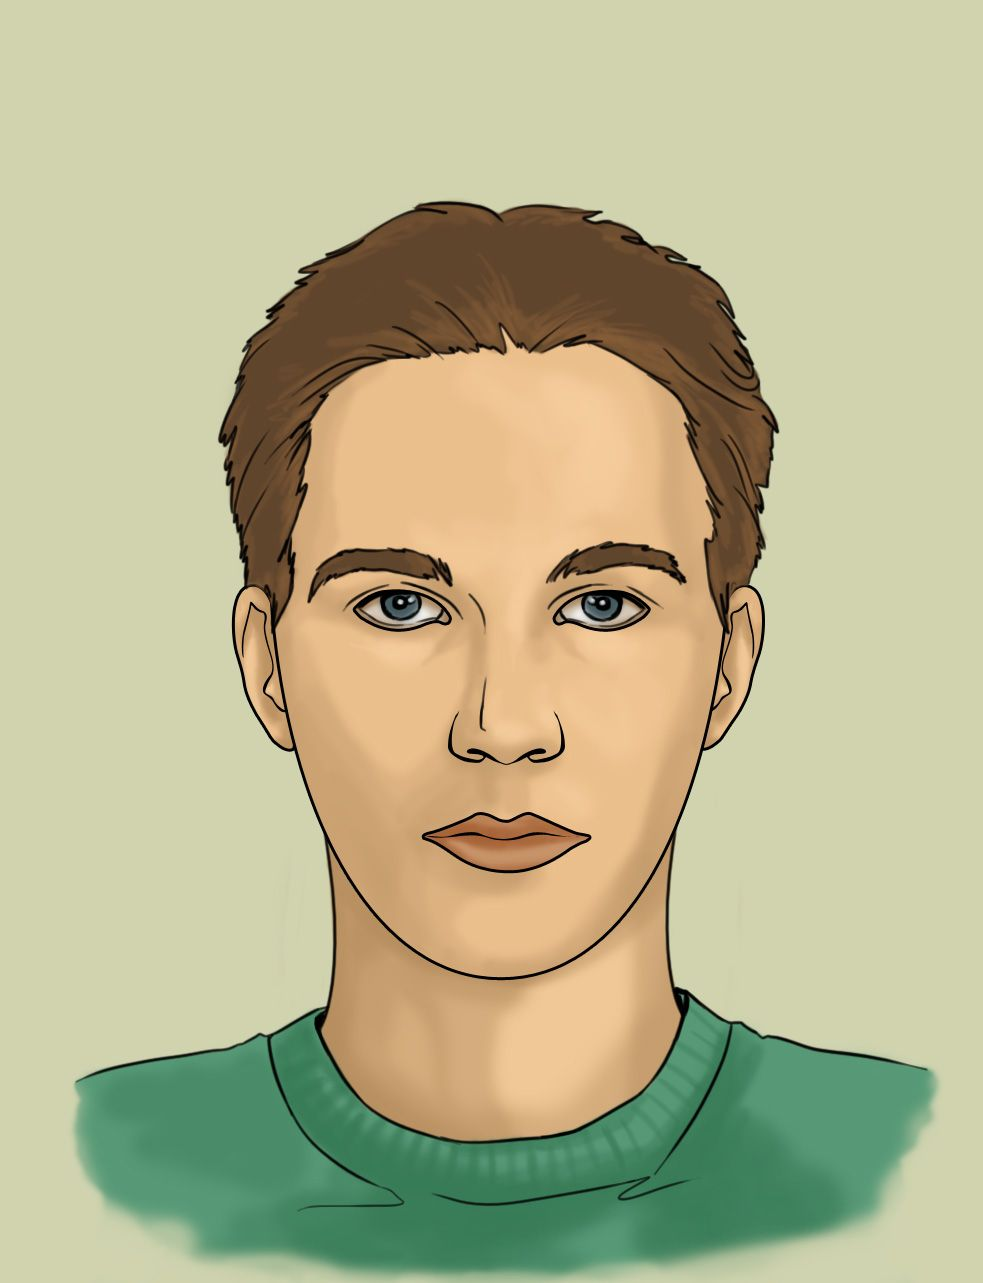 Wikihow to draw human faces via wikihow com